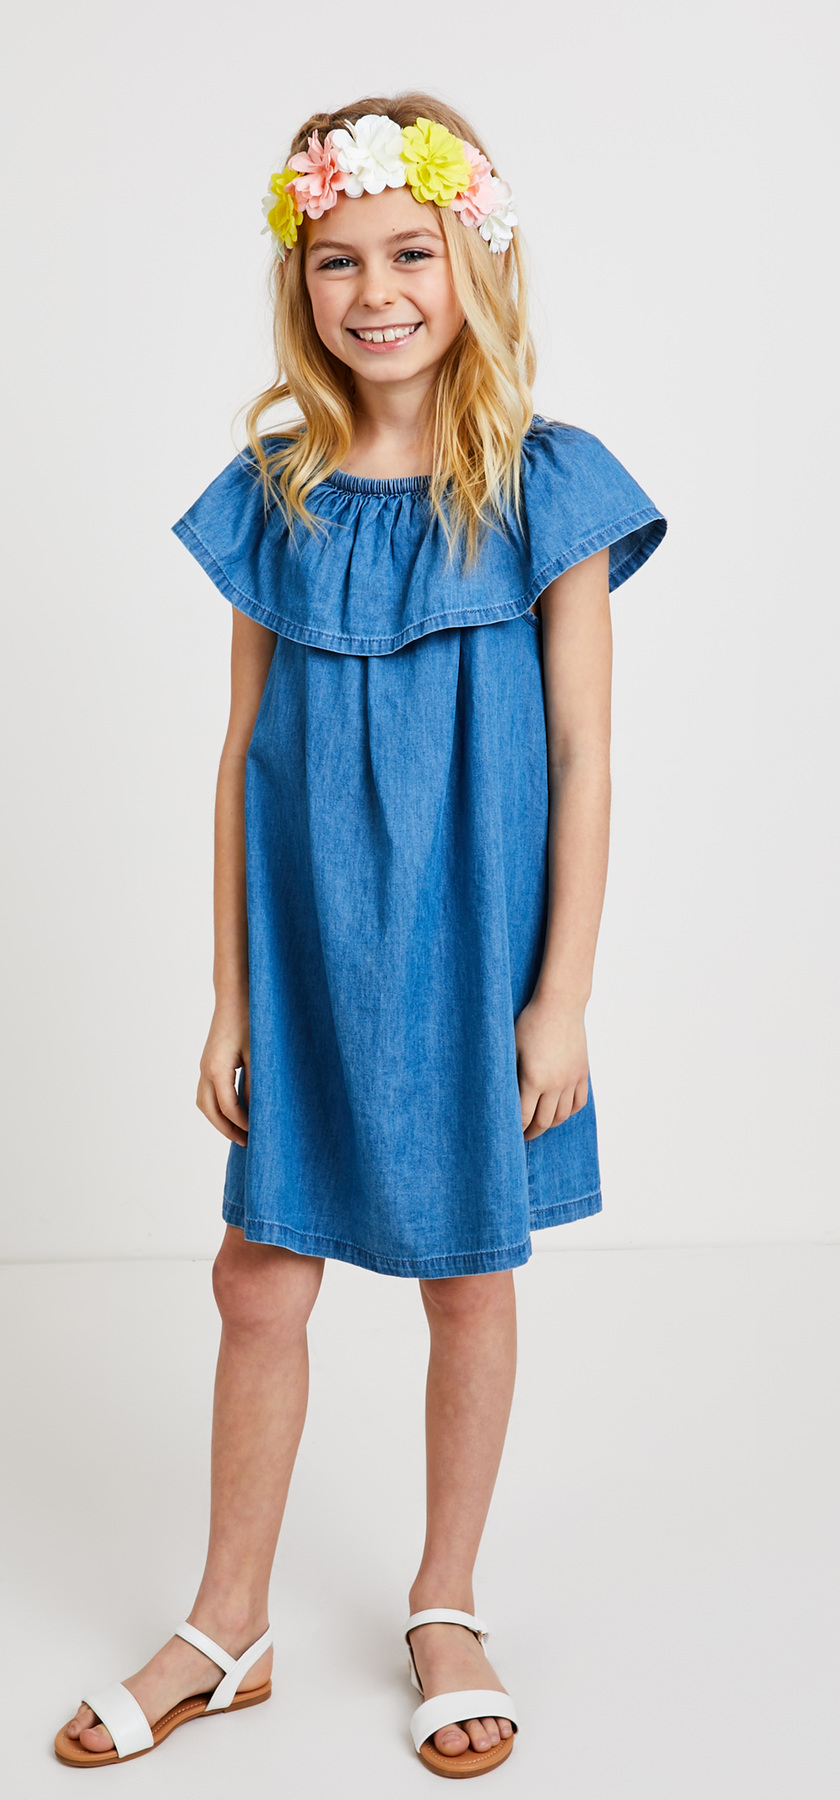 Chambray Flower Crown Dress Outfit Fabkids